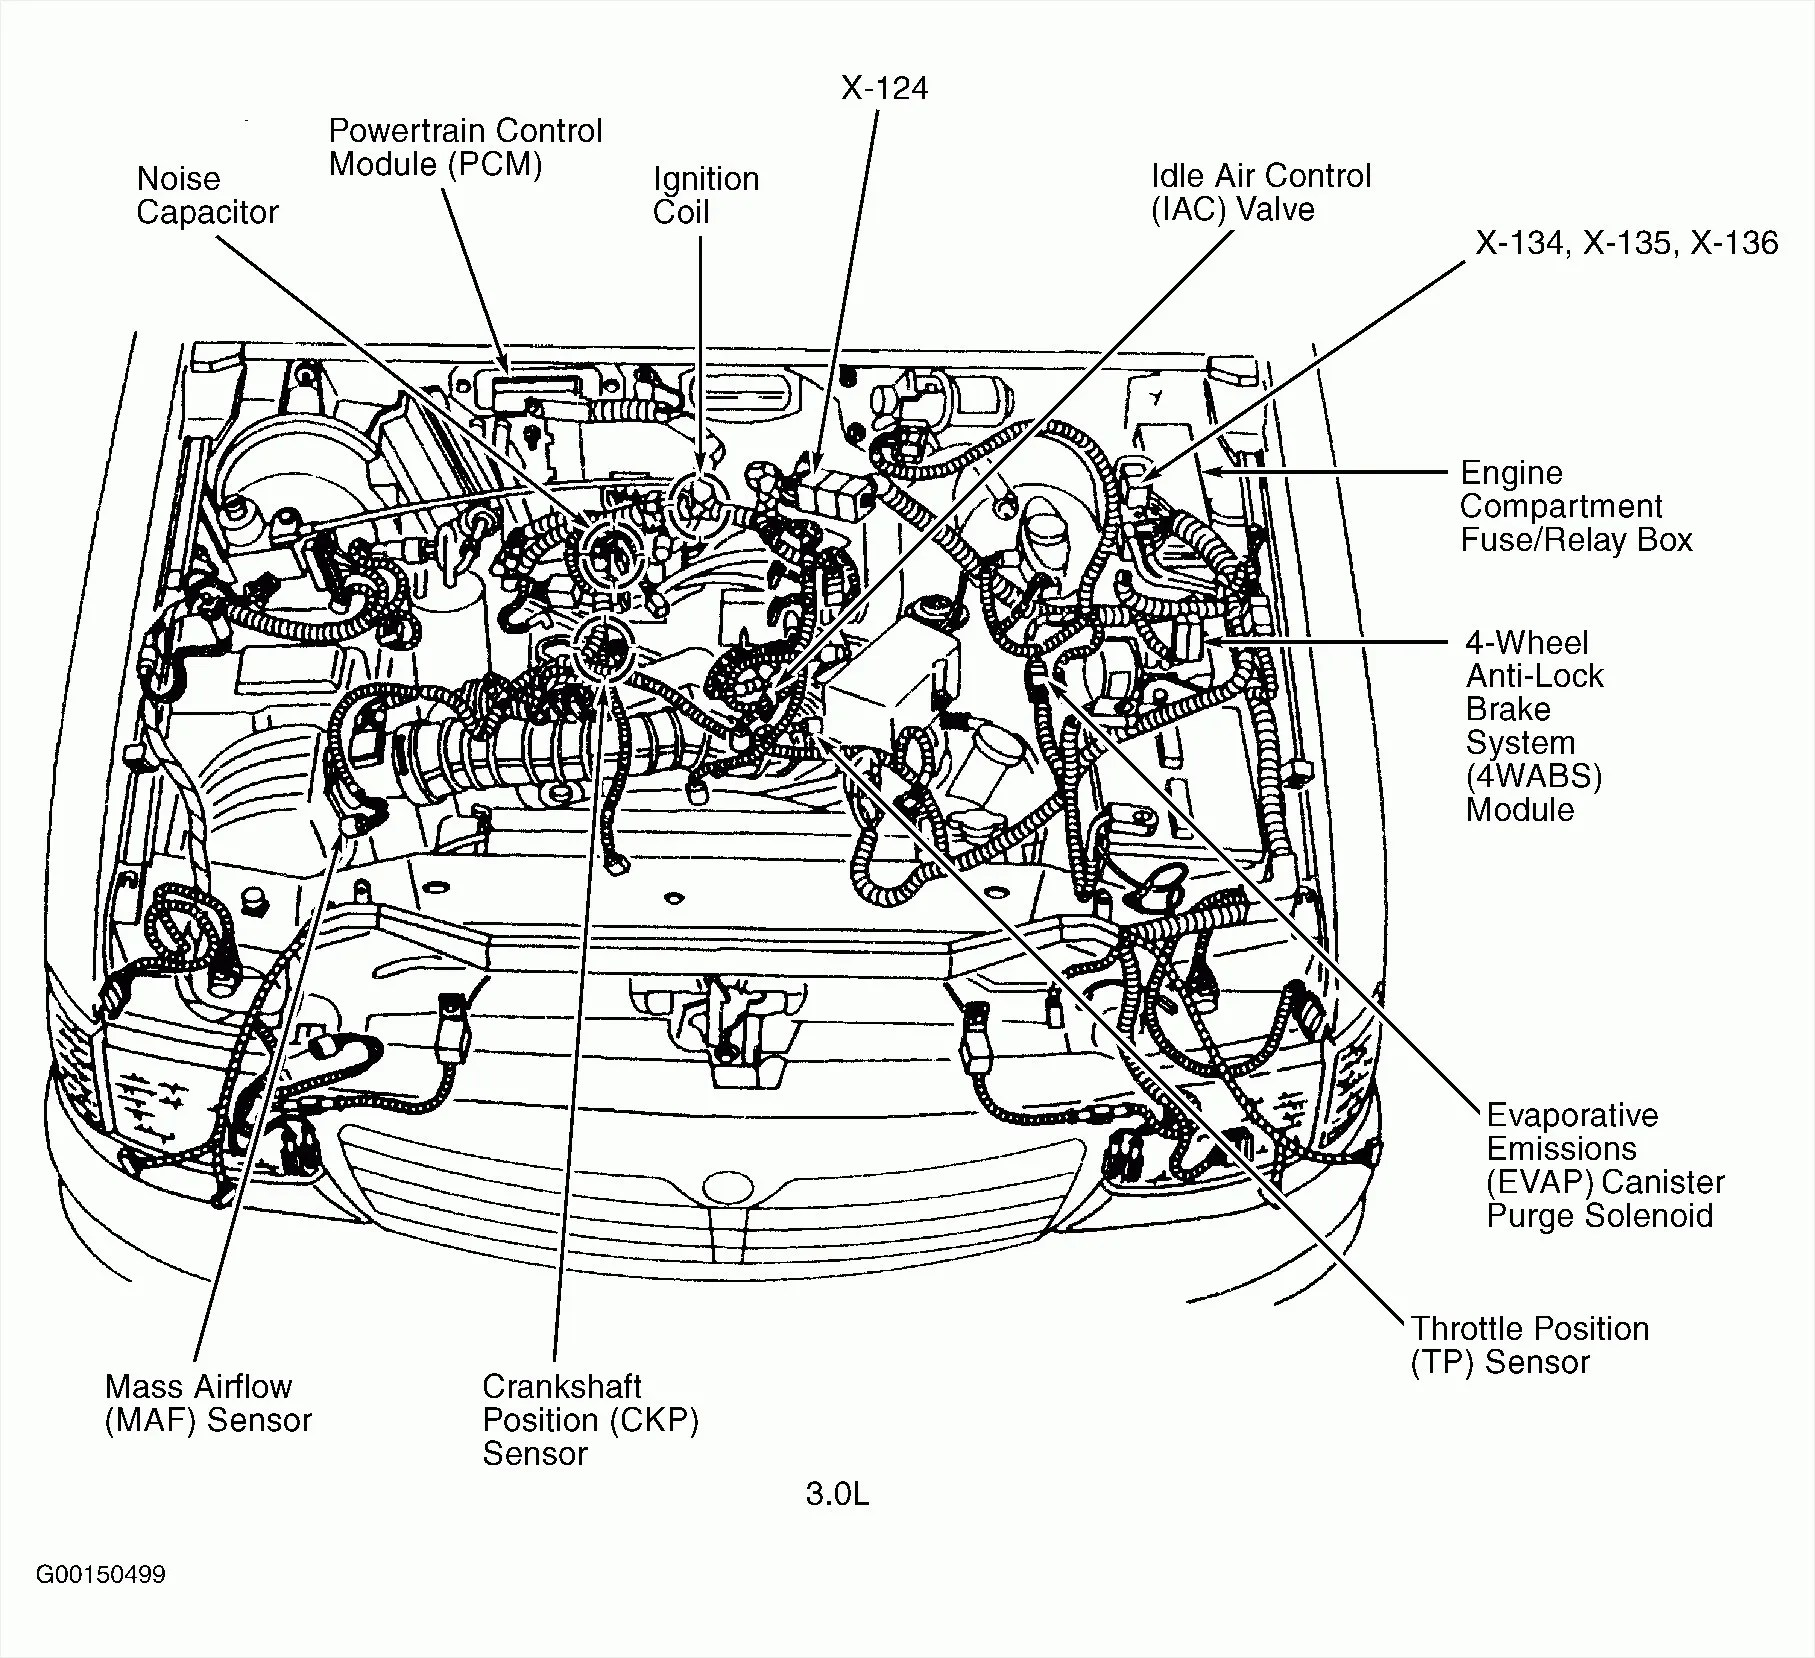 hight resolution of 1999 ford mustang engine diagram wiring diagram datasourcechevy lumina engine diagram 2005 ford mustang engine diagram